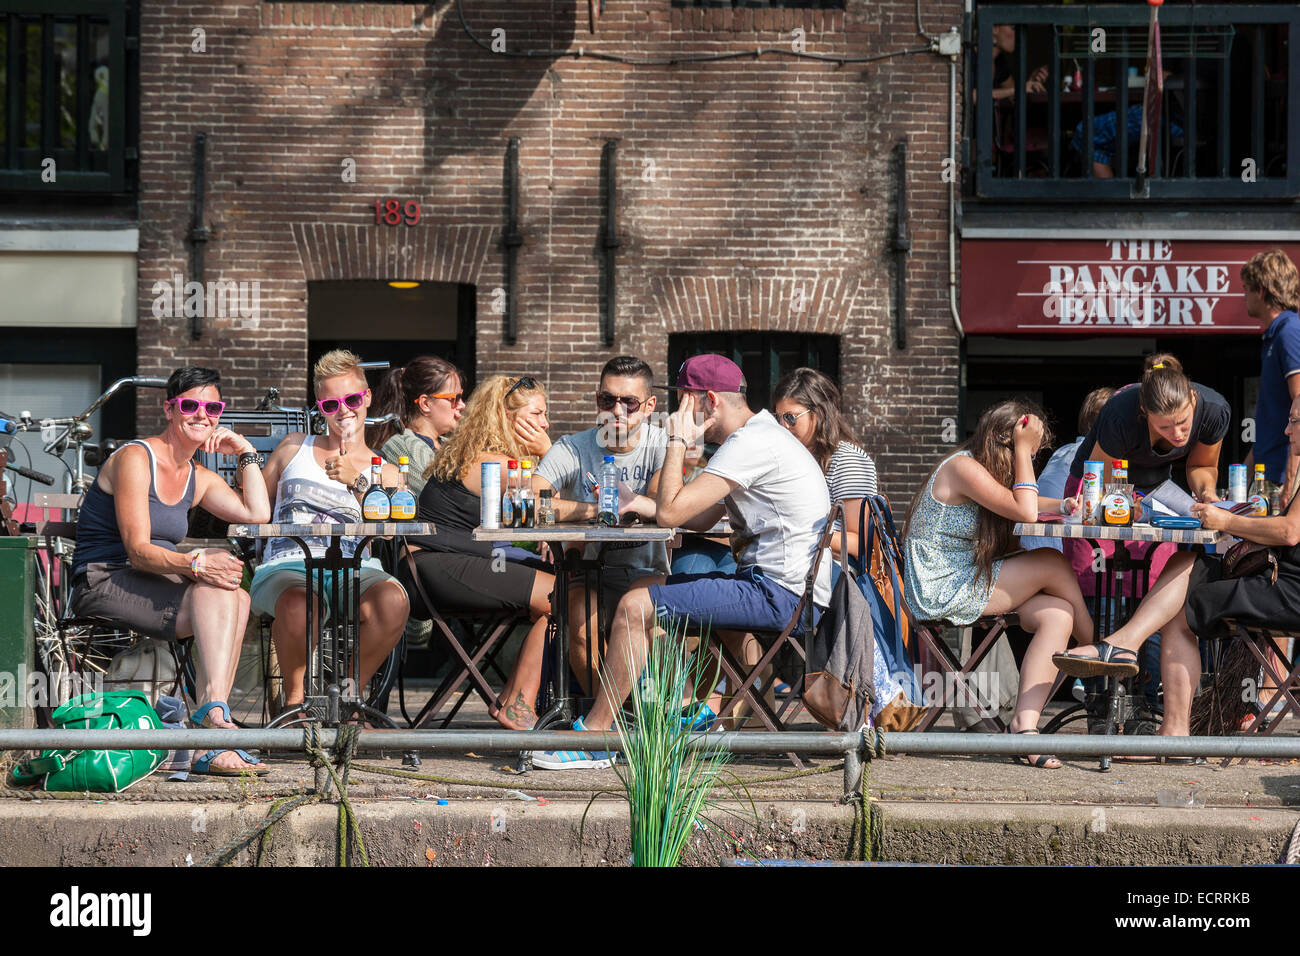 Amsterdam Pancake Bakery Restaurant on the Prinsengracht canal. People sitting on the edge of the water. Seen from - Stock Image